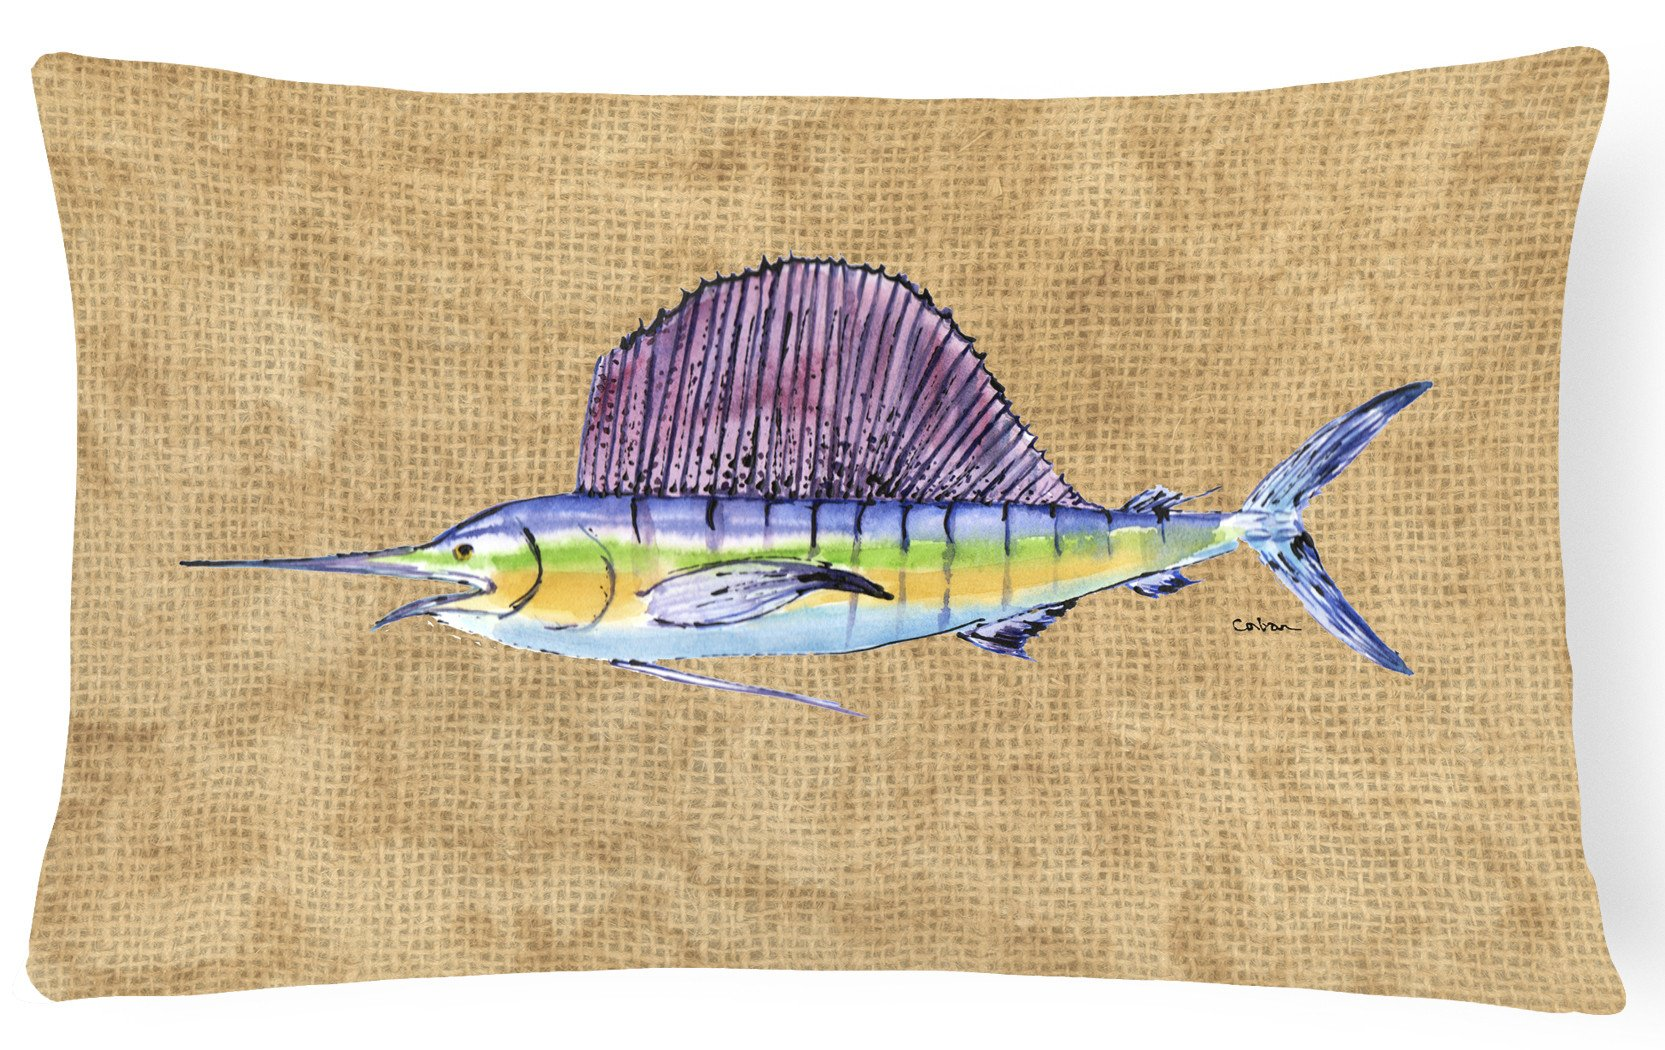 Swordfish   Canvas Fabric Decorative Pillow by Caroline's Treasures